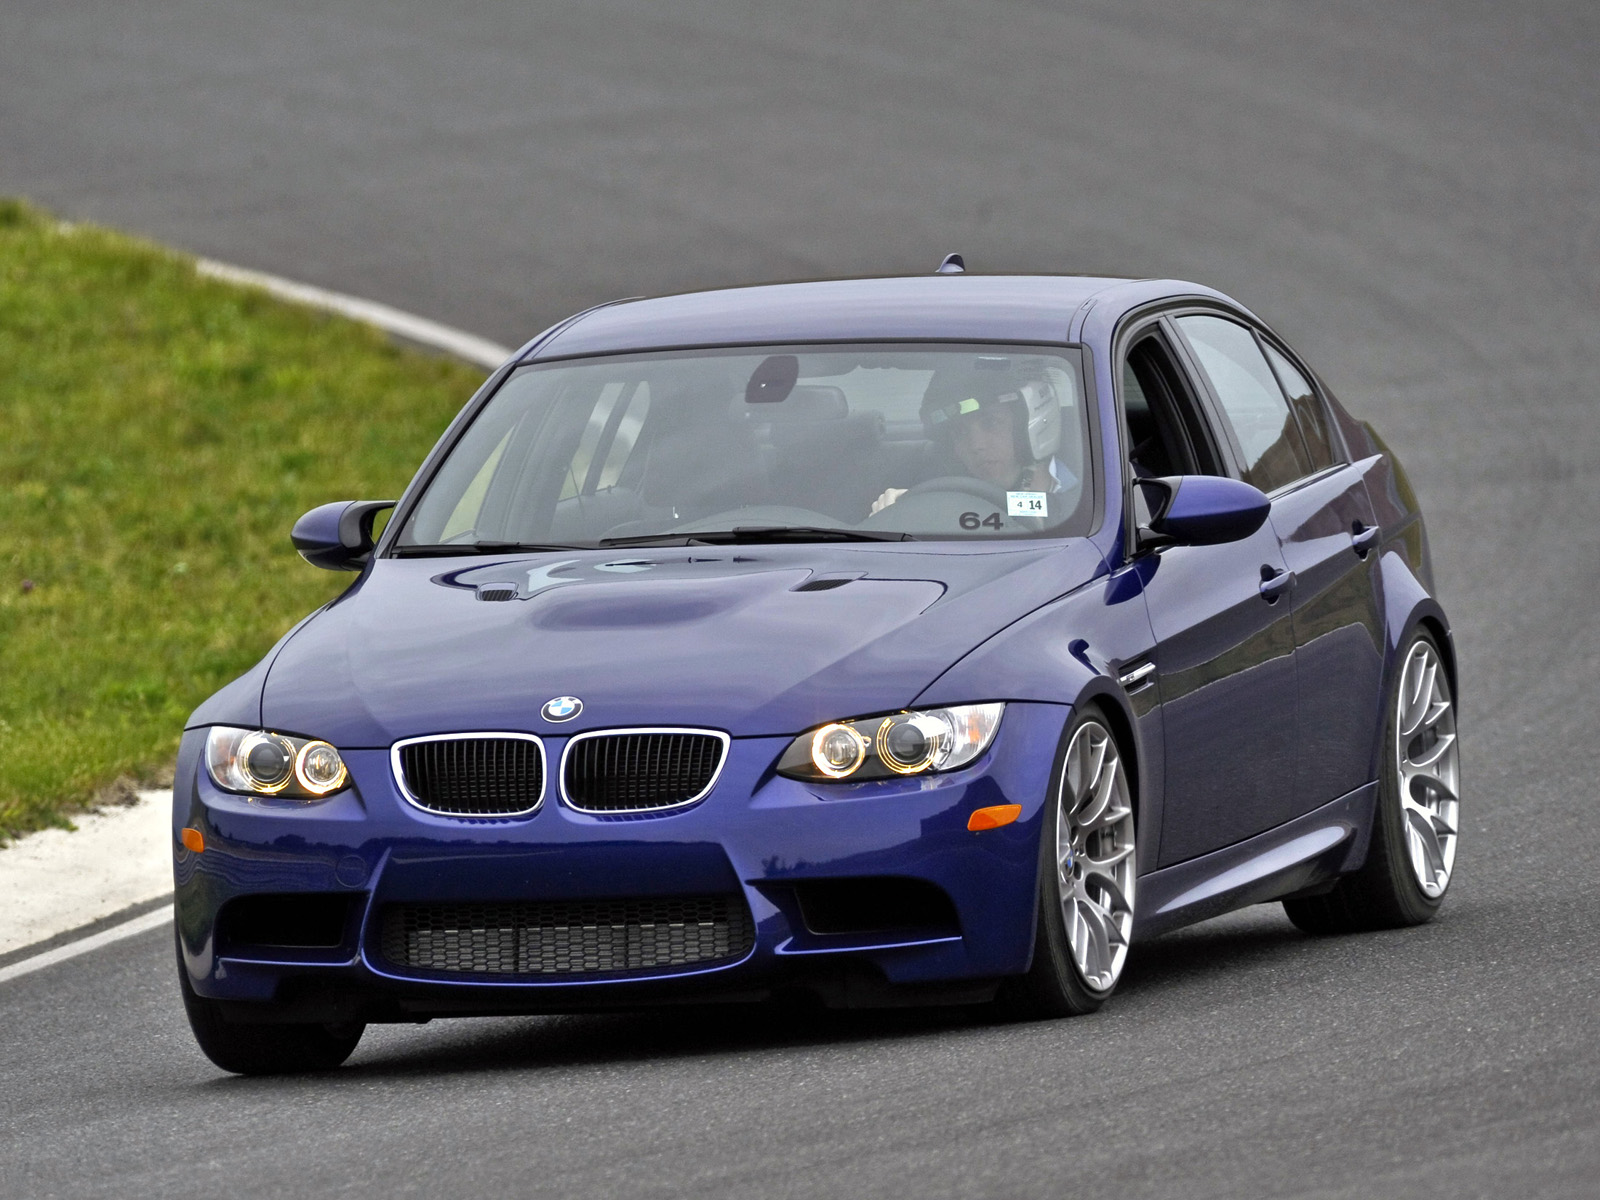 2008 Bmw M3 coupe (e90) – pictures, information and specs - Auto ...